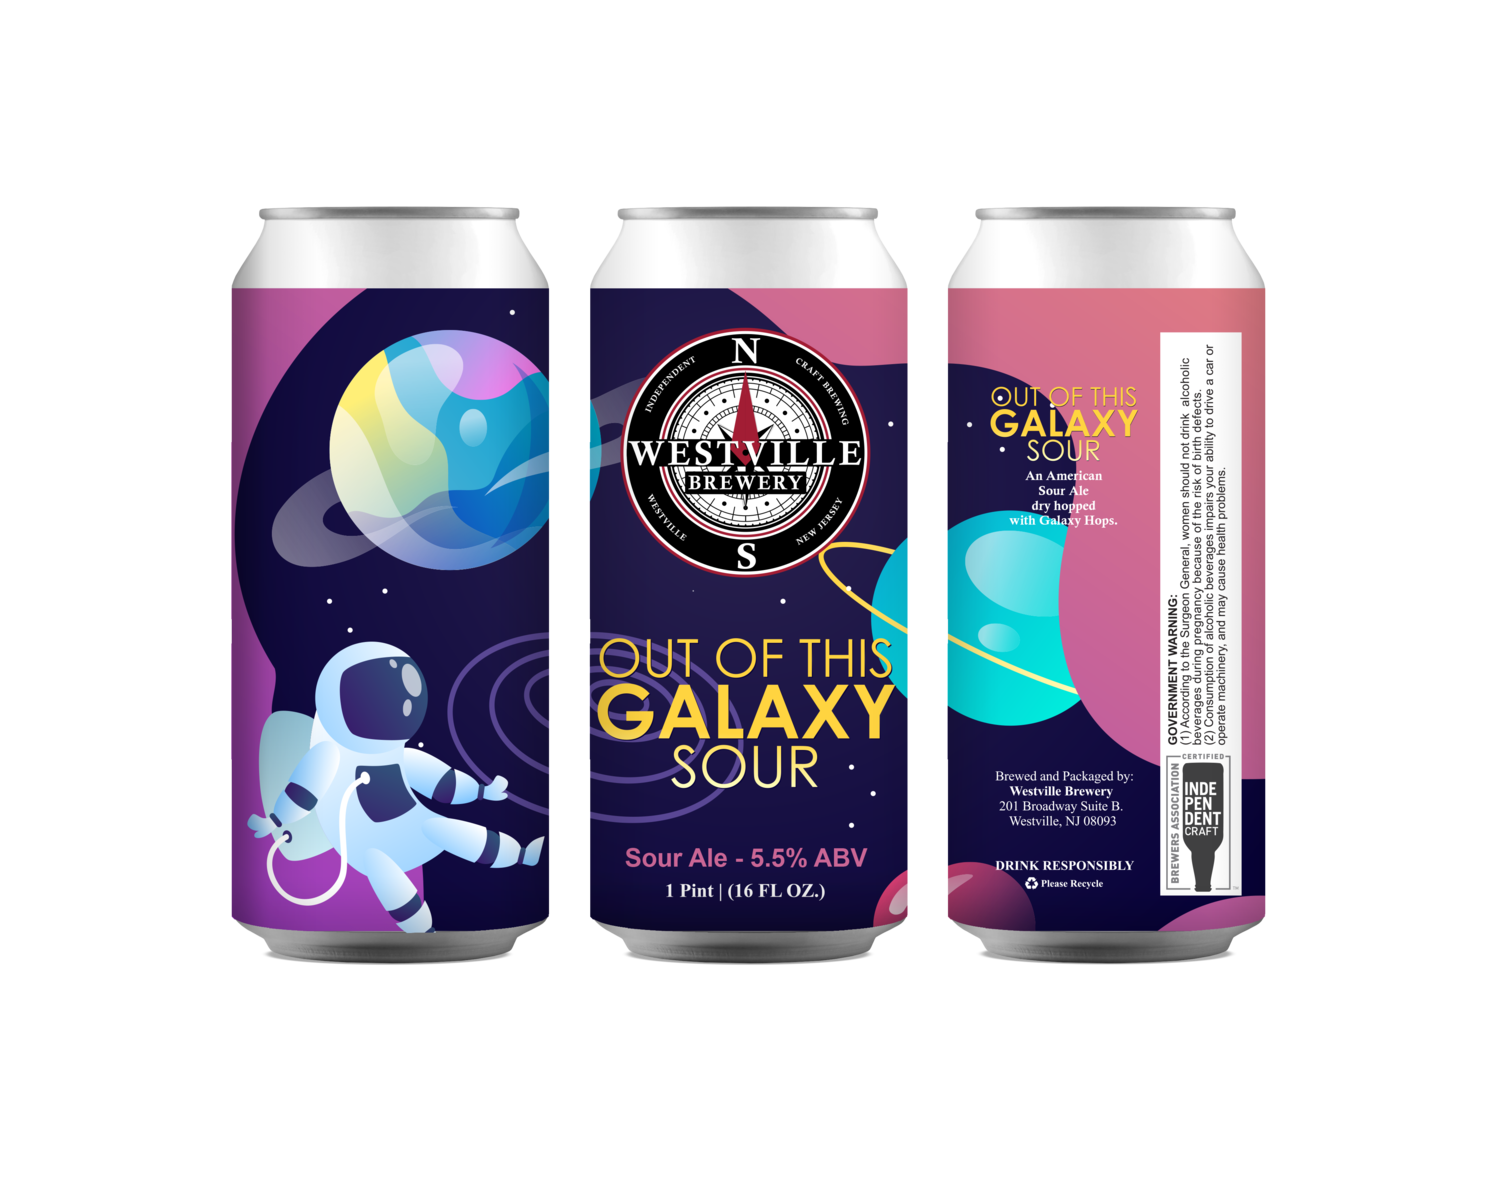 Out of this Galaxy Sour - 5.5% ABV - 4 Pack